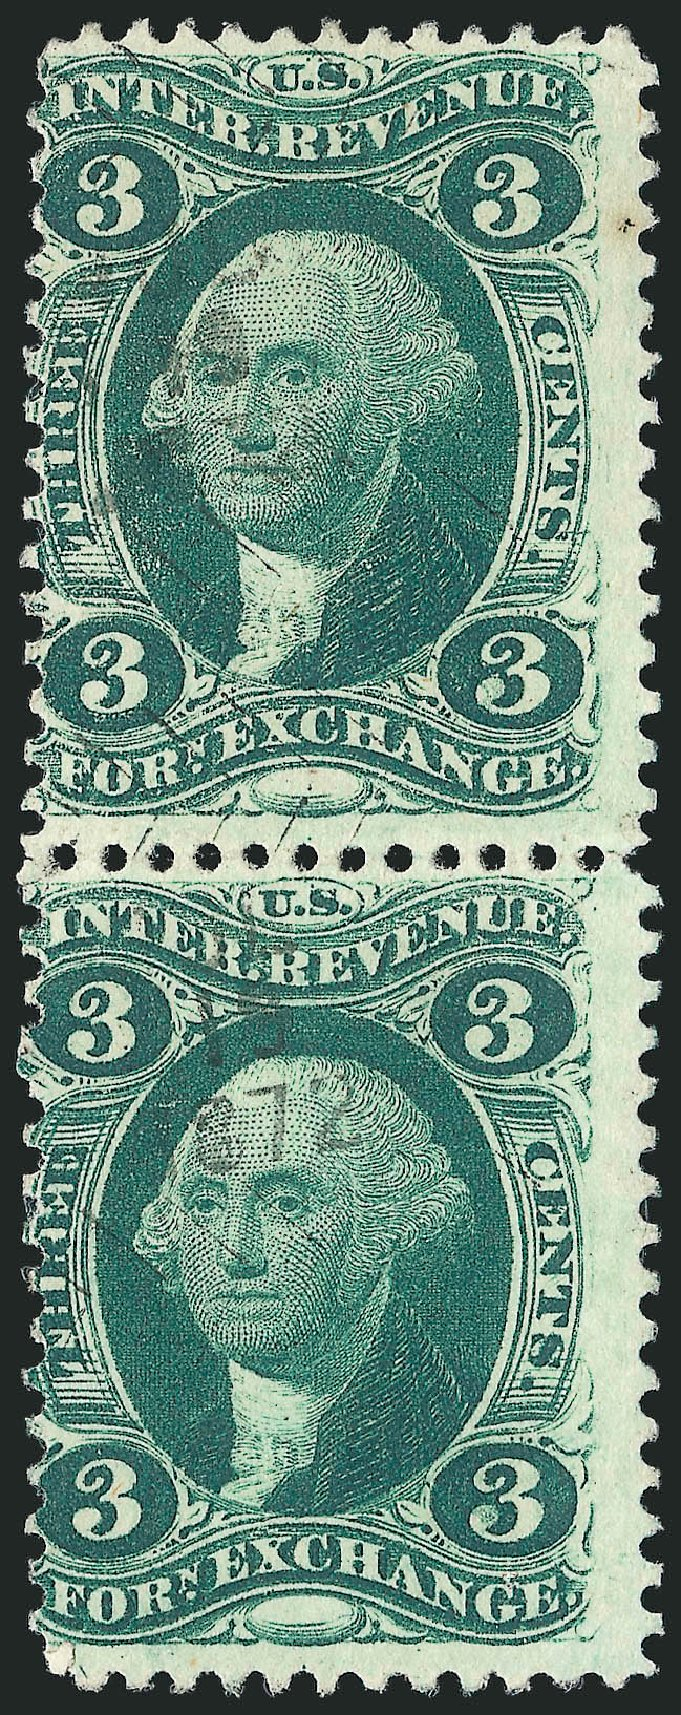 Value of US Stamp Scott R16 - 3c 1862 Revenue Foreign Exchange. Robert Siegel Auction Galleries, Dec 2014, Sale 1089, Lot 455